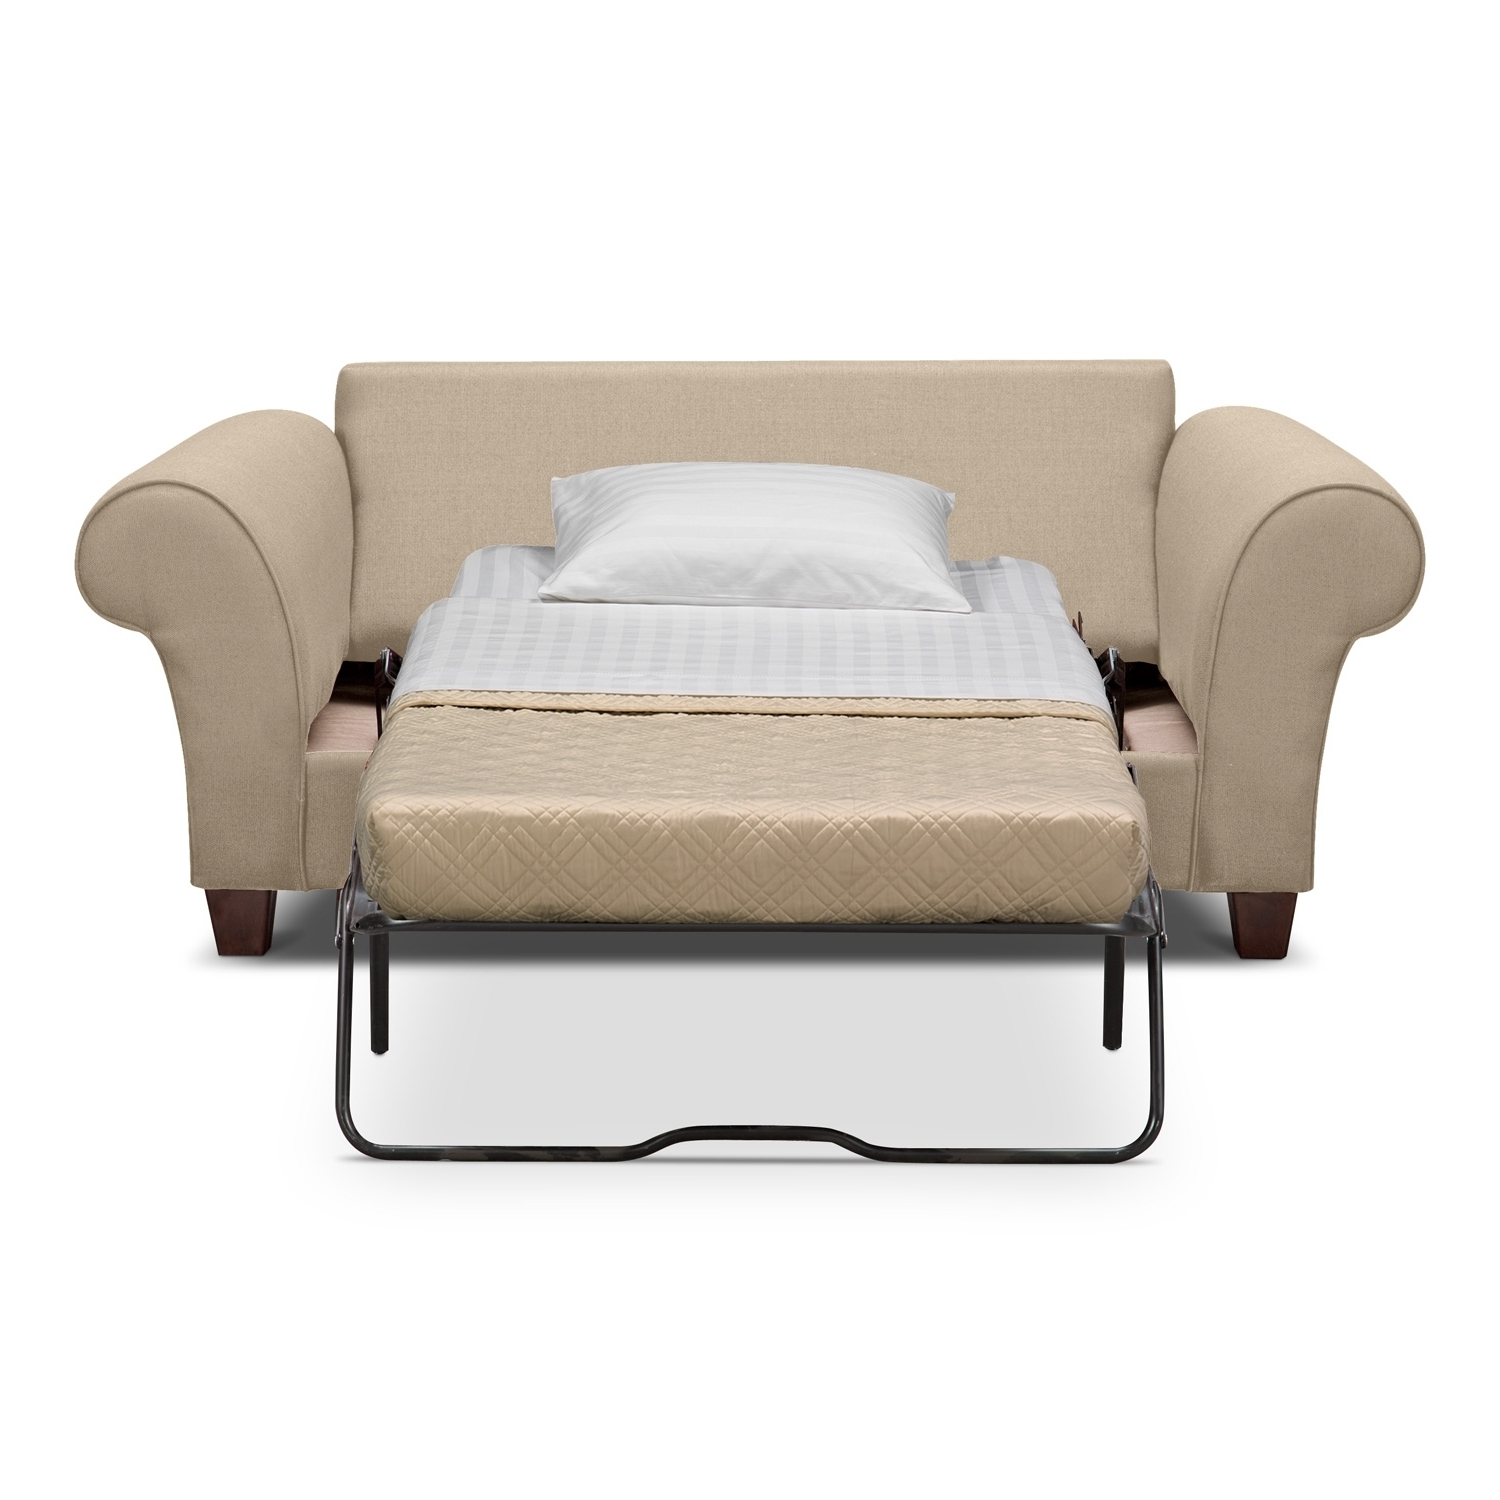 Unique Chair Bed Twin Sleeper — Jacshootblog Furnitures : Chair Throughout Most Up To Date King Size Sleeper Sofas (View 14 of 15)